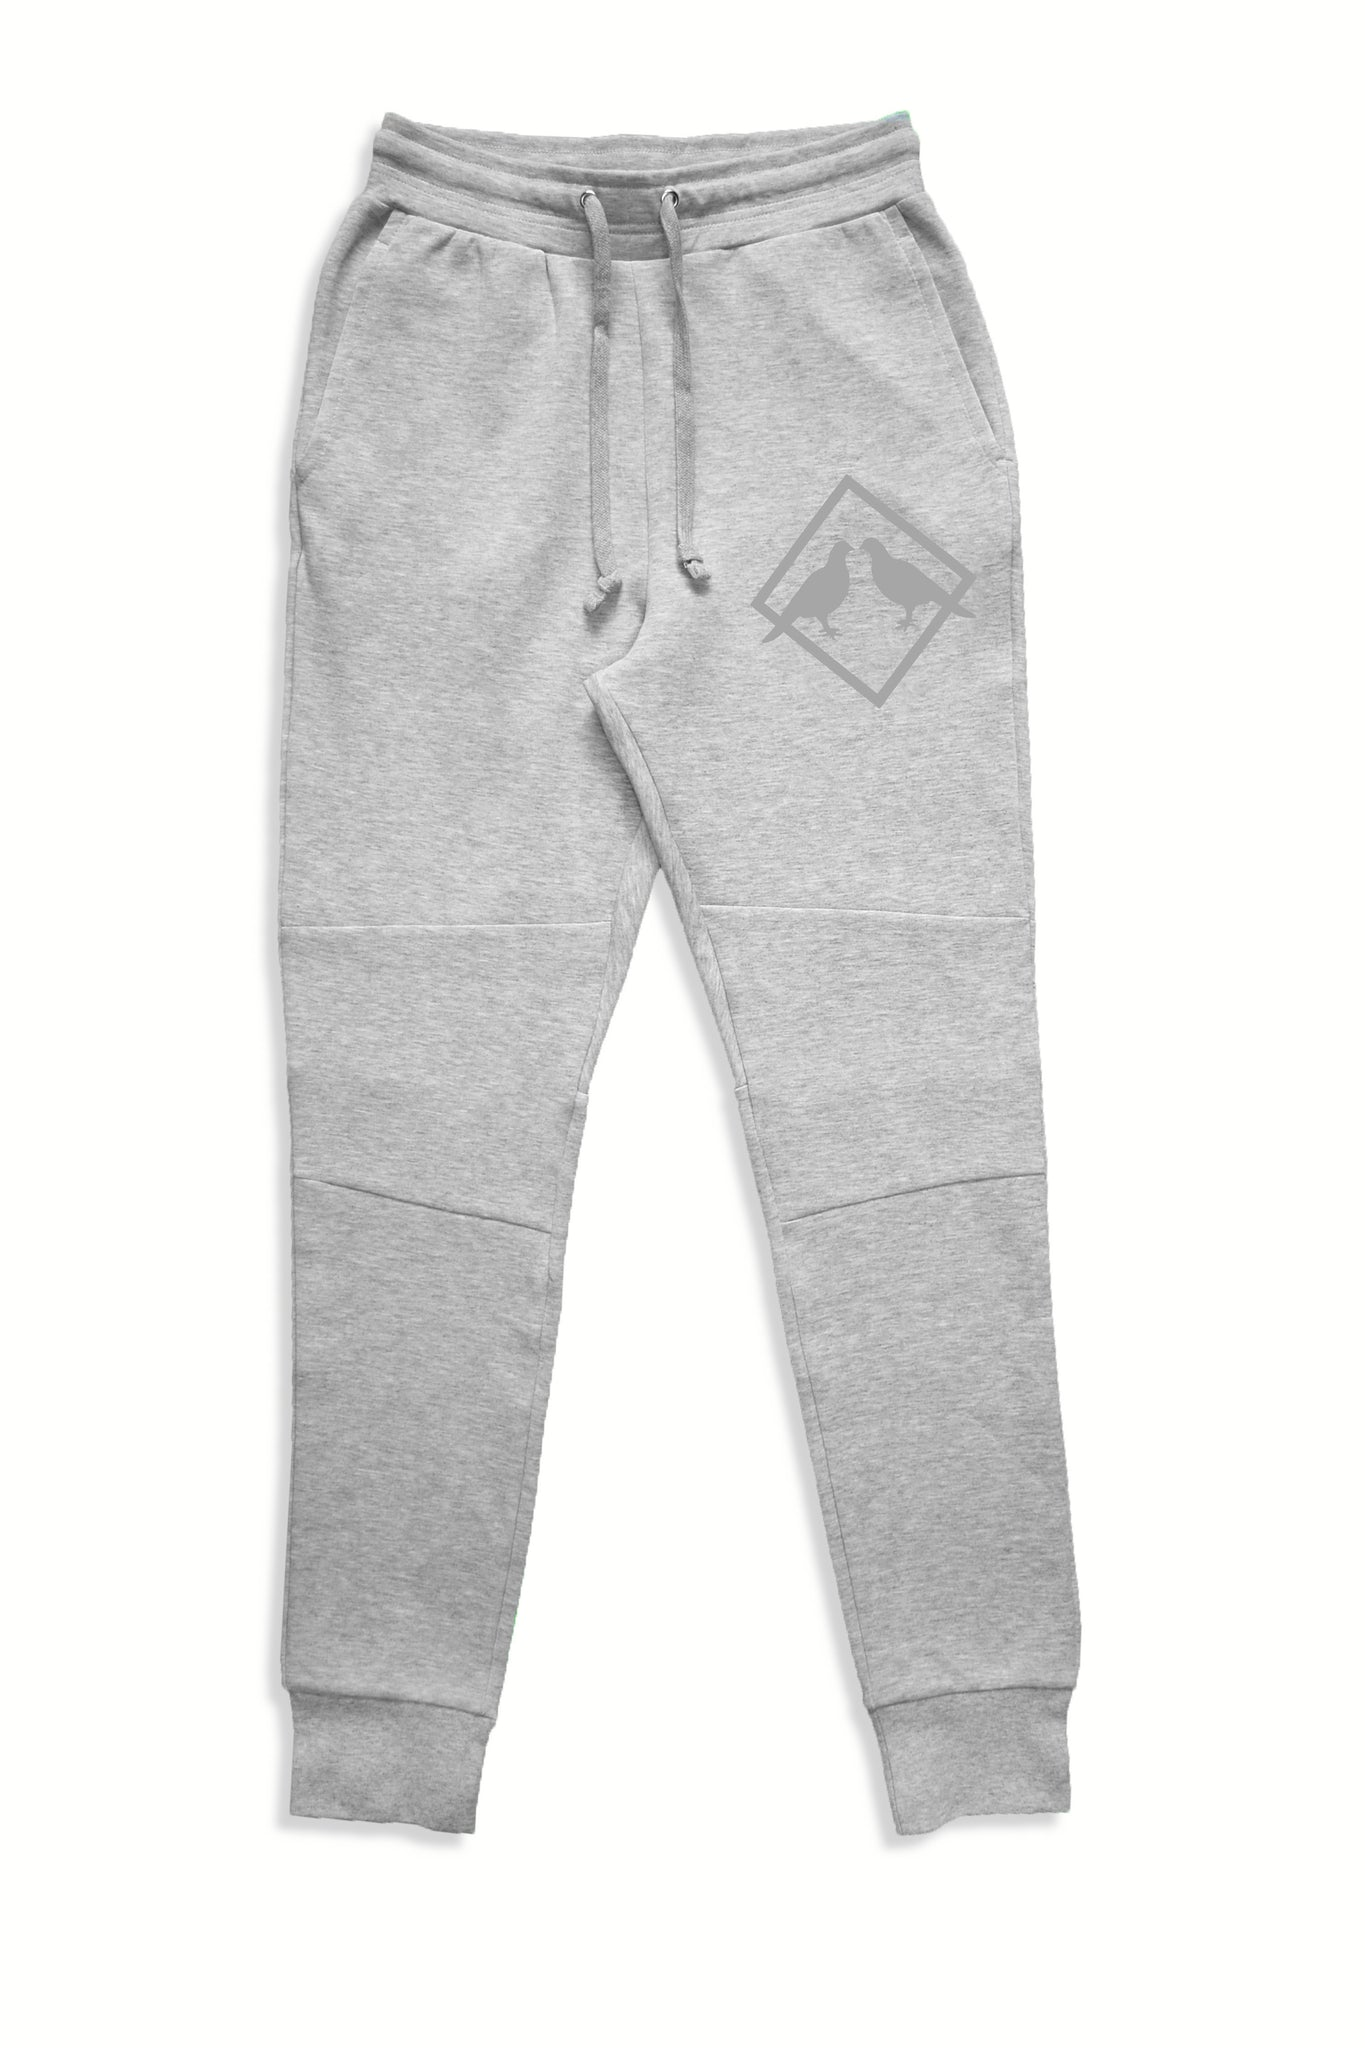 2.0 Performance Tech Fleece Sweatpants (Gray/Gray)